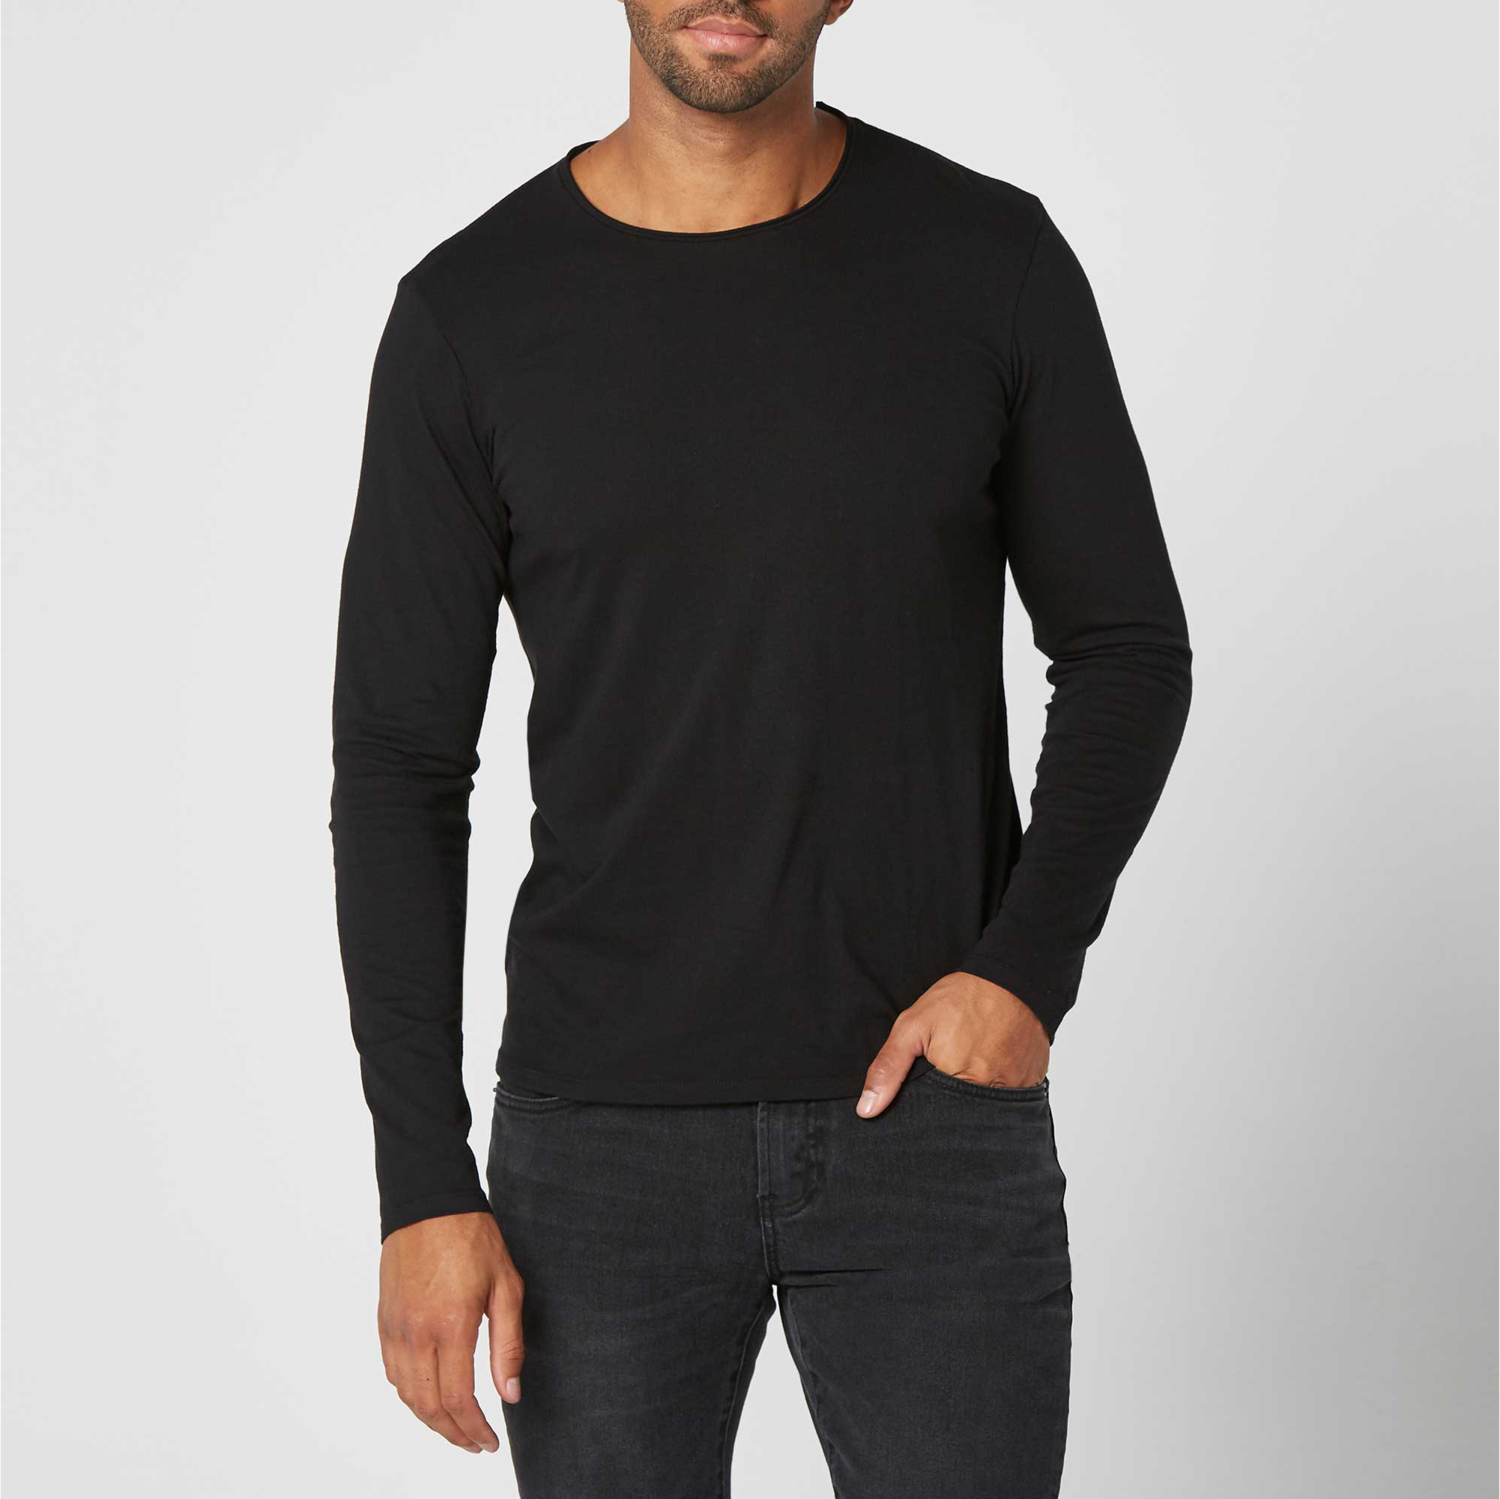 4e09318fd56 Mens Long Sleeve Modern Crew Neck Tee In Black $30 | DSTLD